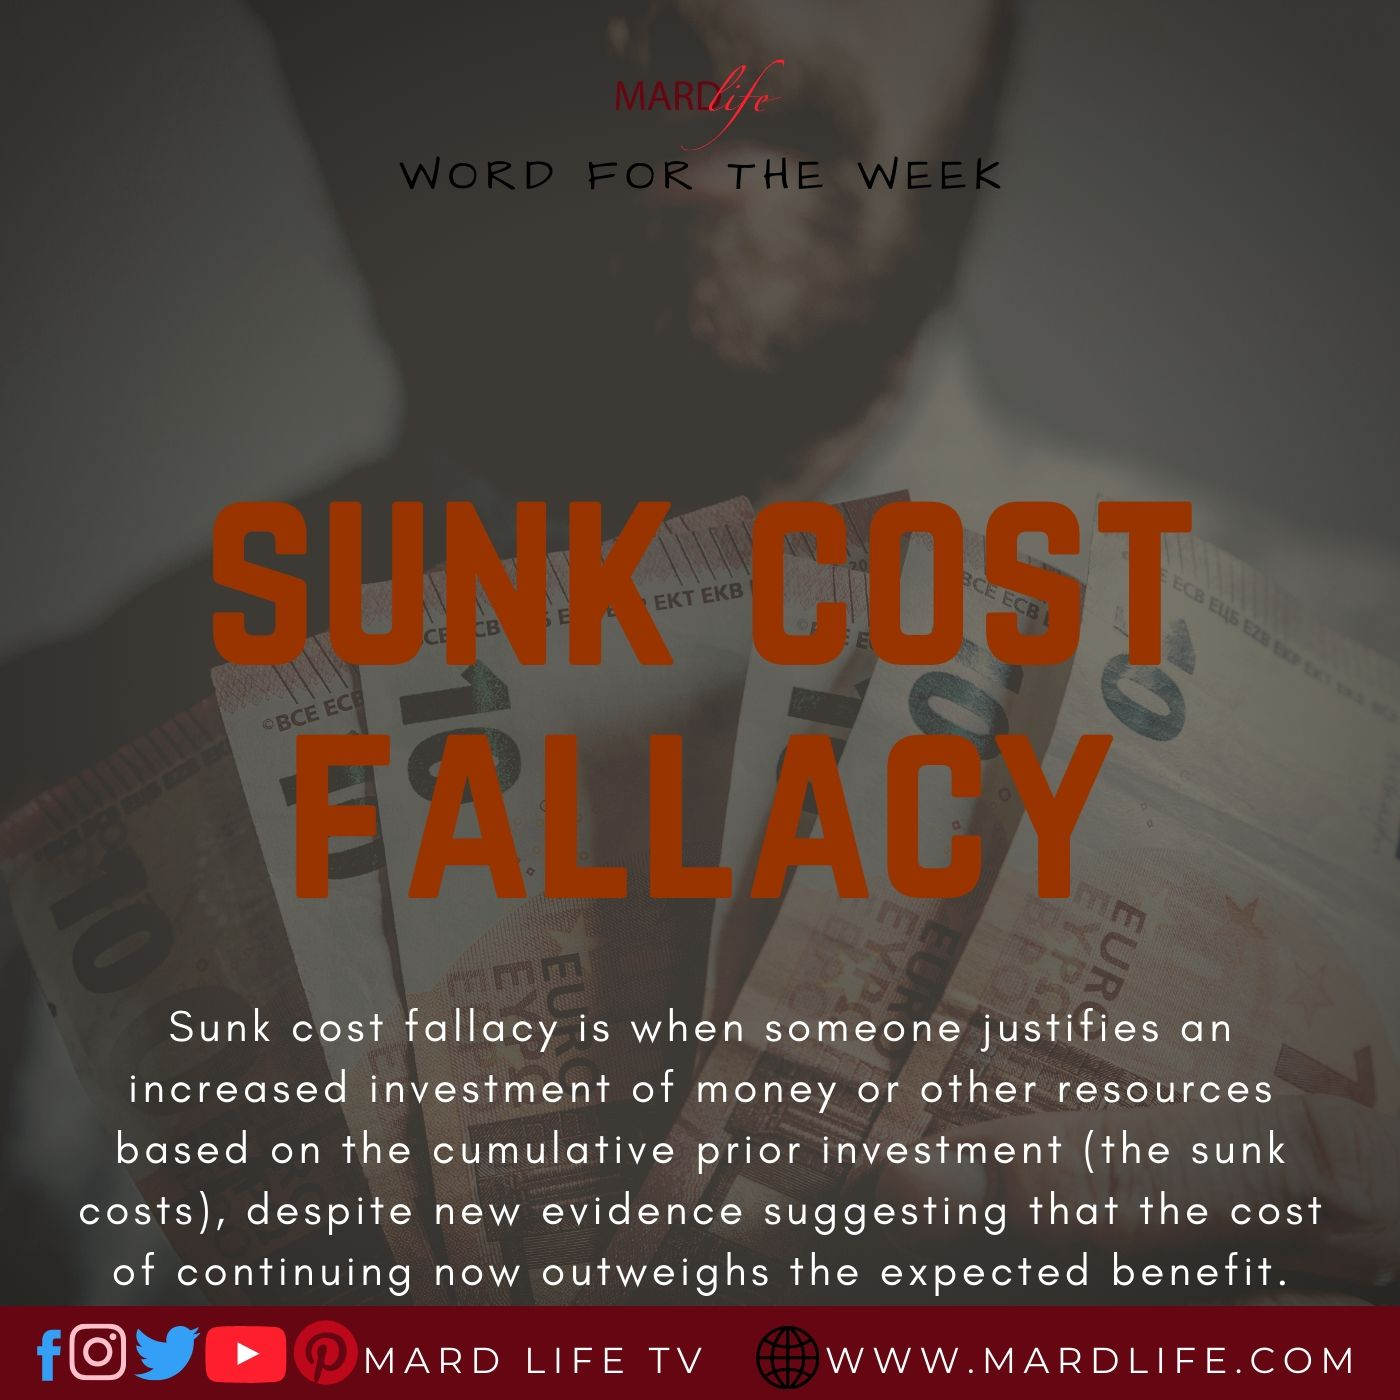 Sunk Cost Fallacy, Sunk Cost, Cost, Waste, Failure, Business, Relationship, Investment, Error, Mistake,